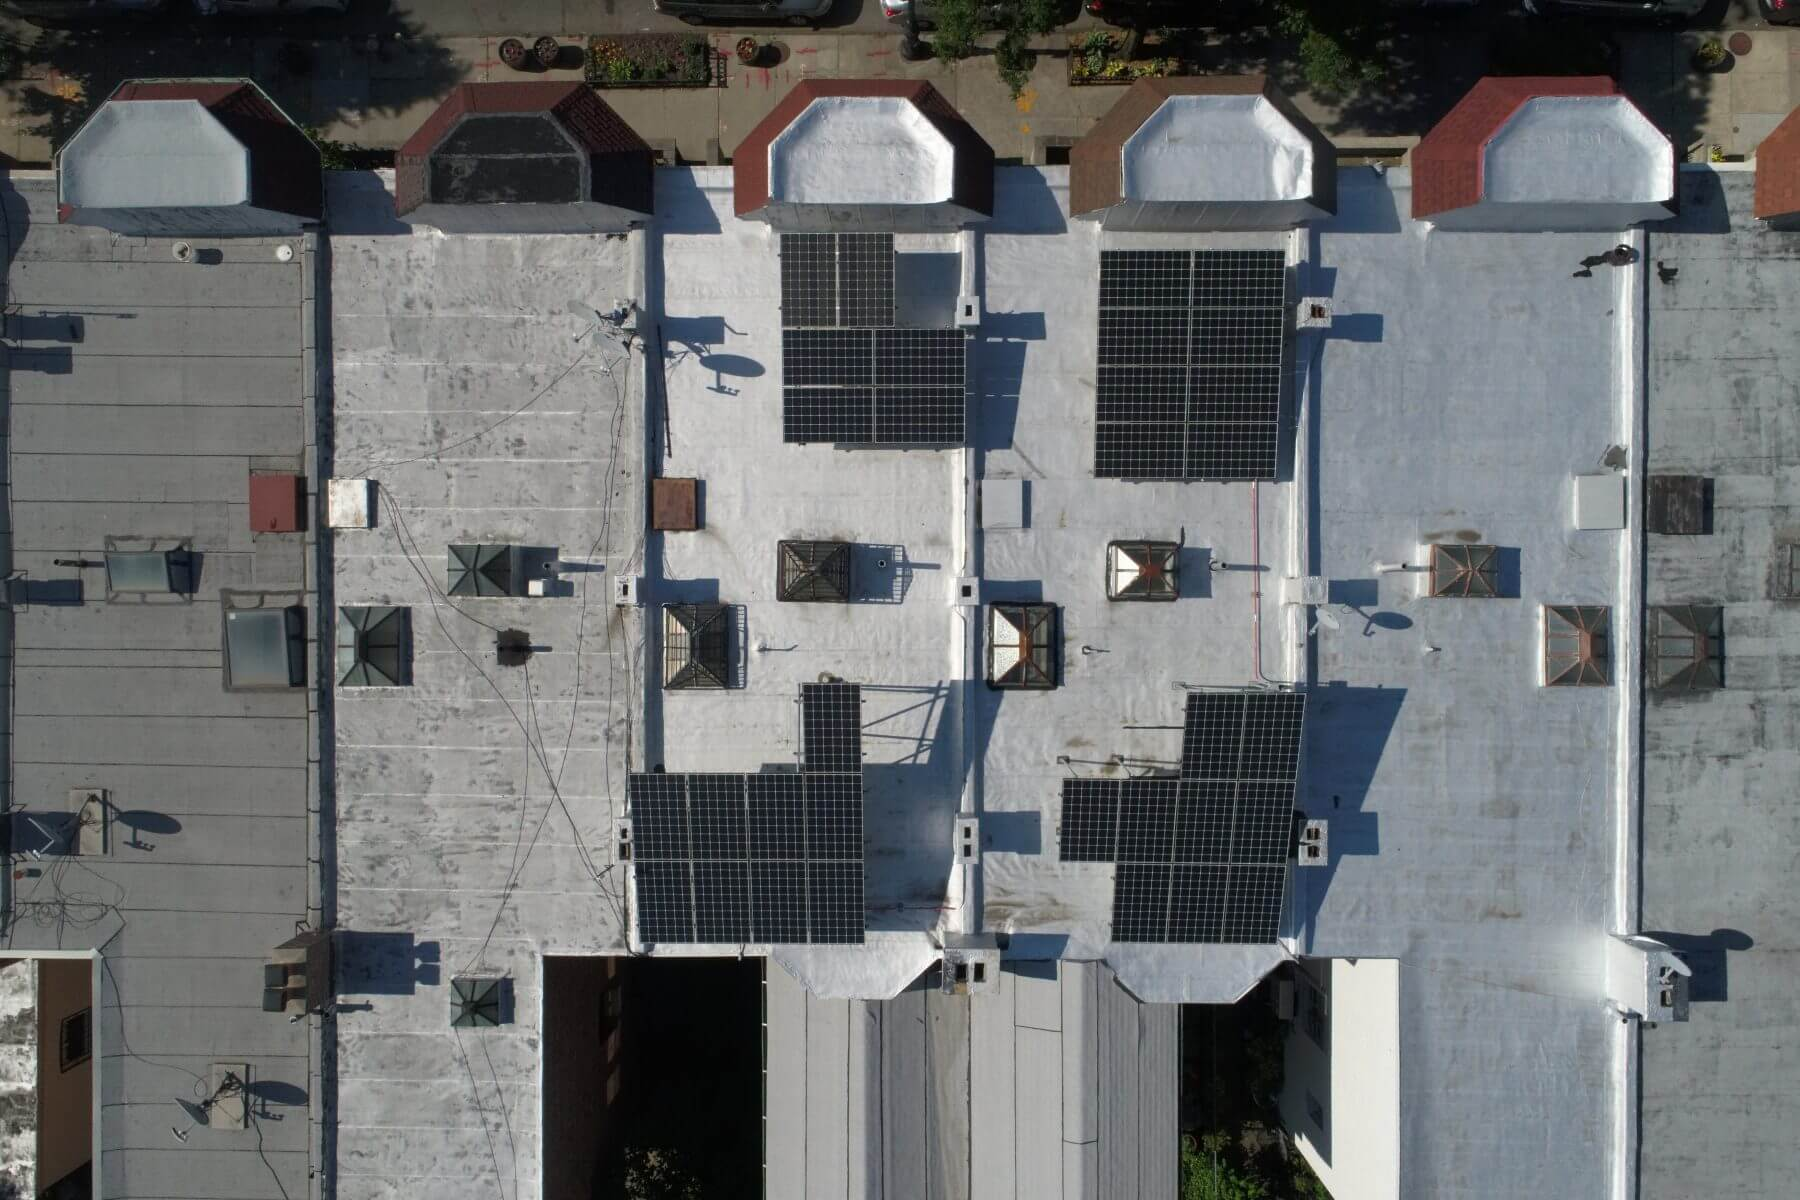 Two tilt rack solar systems designed around hatches and sky lights (Lefferts Gardens).